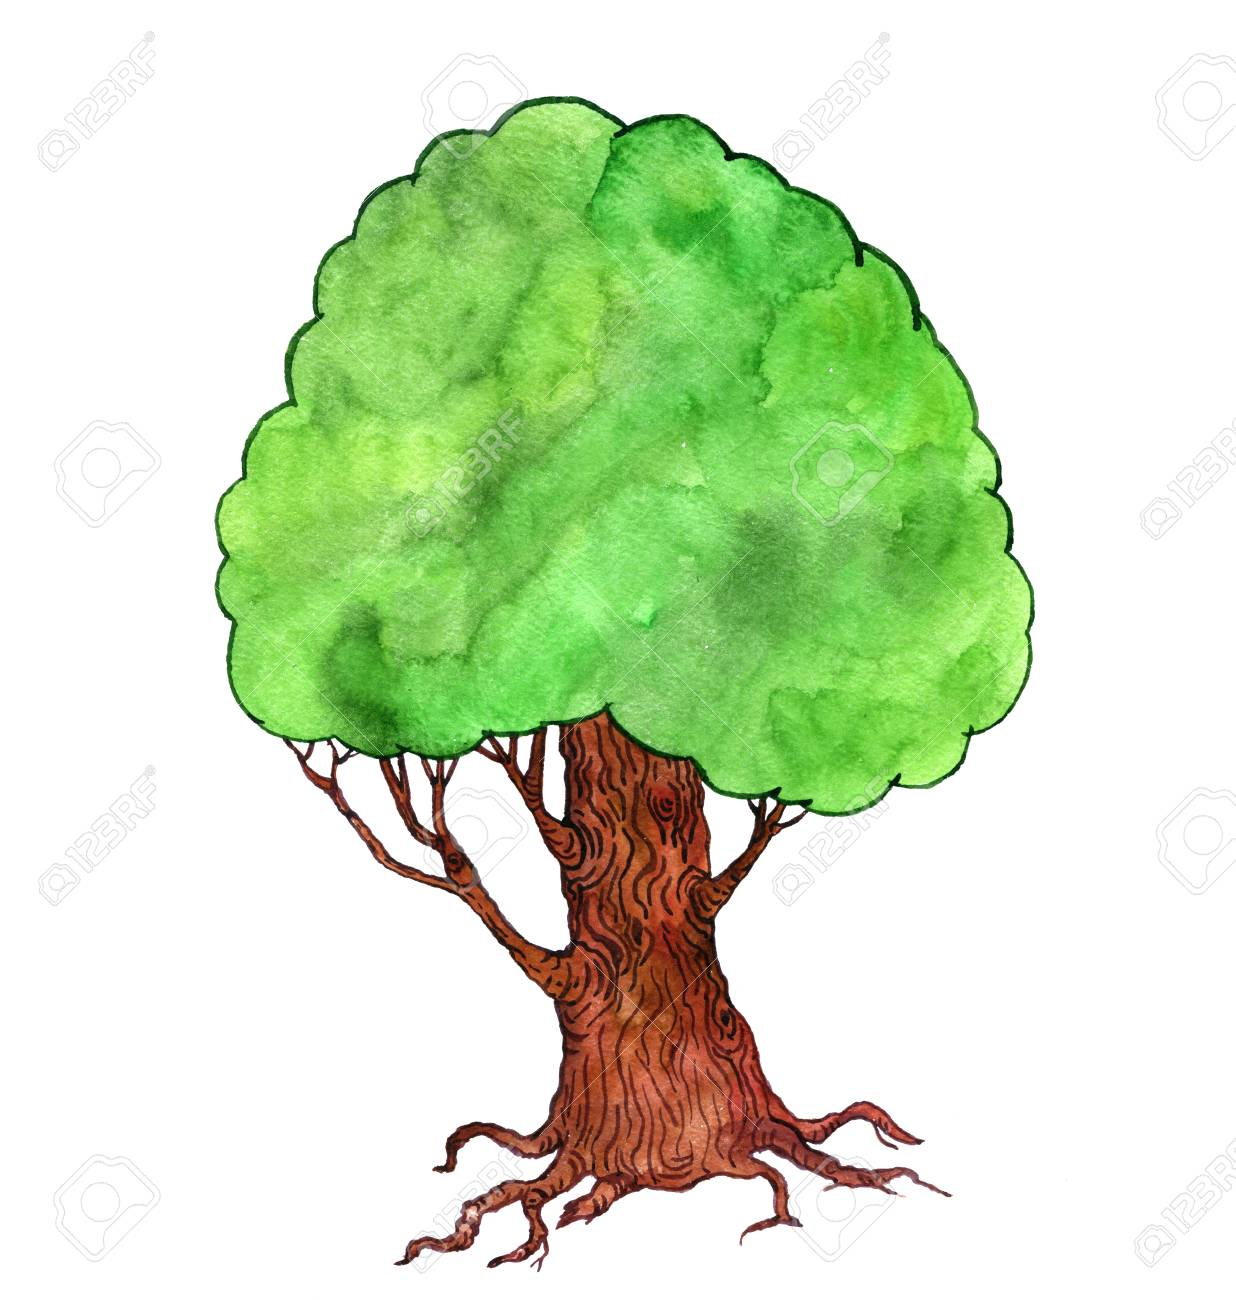 Tree Drawing Cartoon at GetDrawings.com | Free for personal use Tree ...